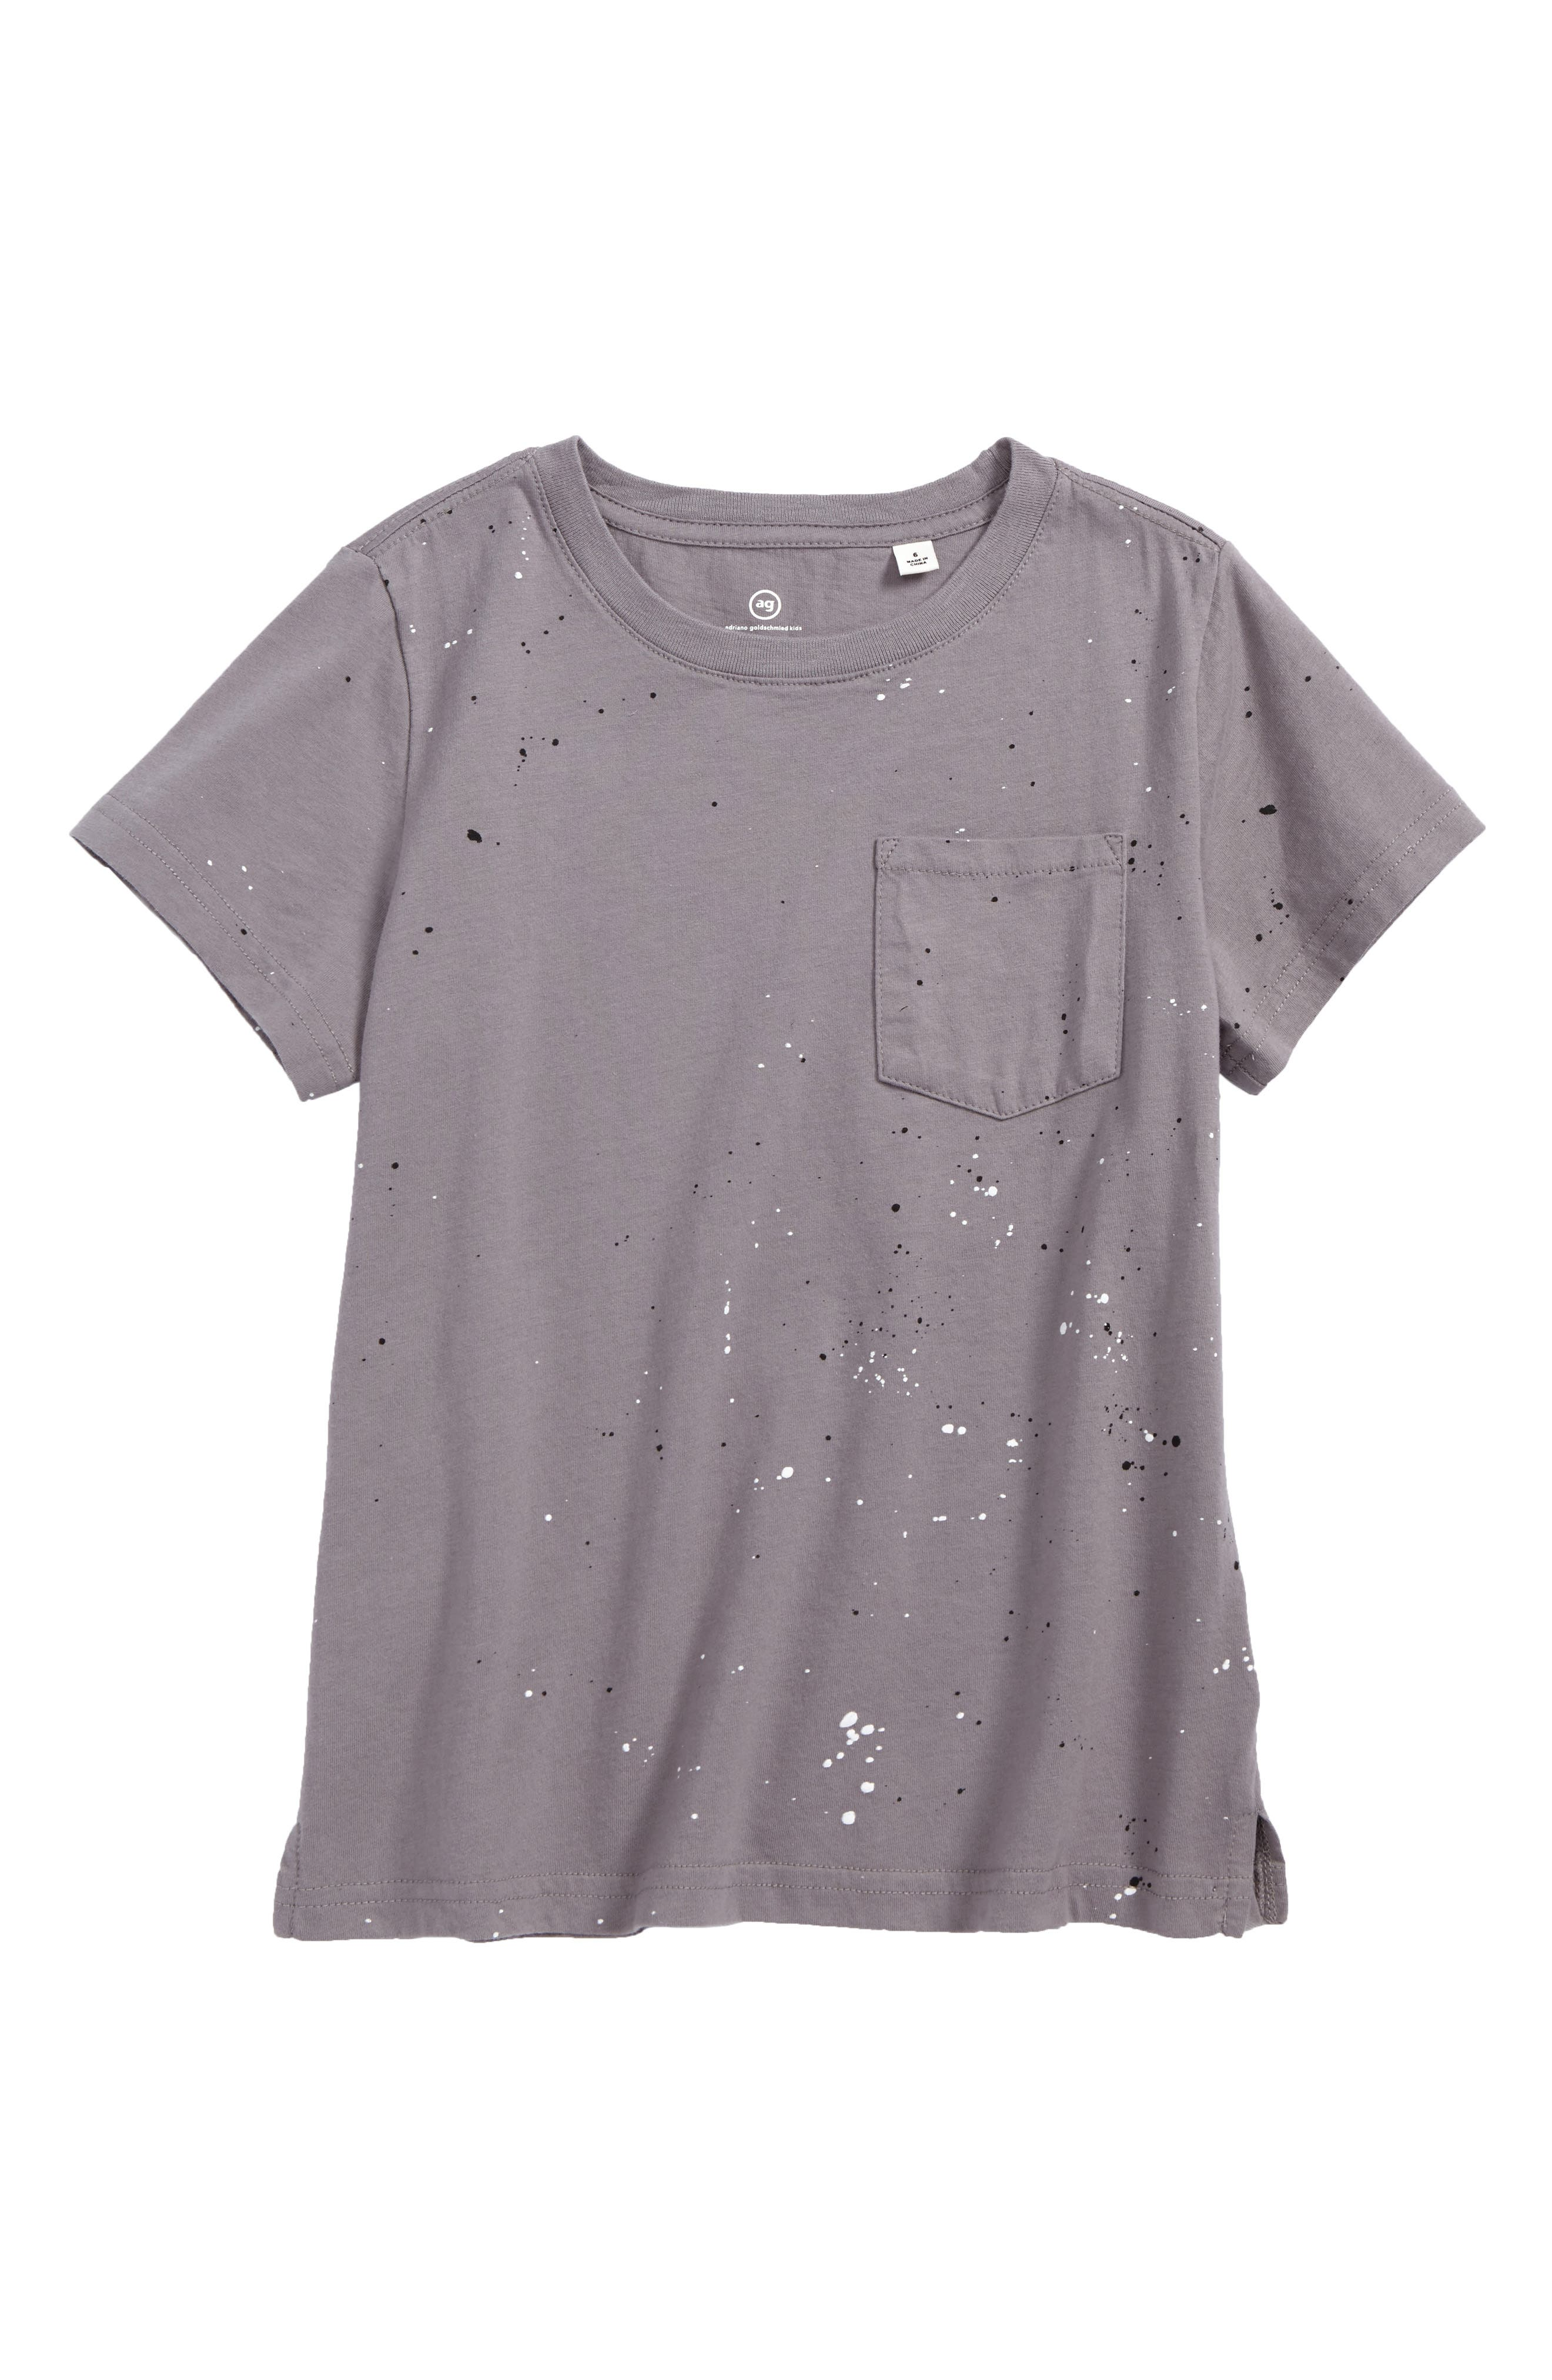 AG Paint Splatter T-Shirt,                         Main,                         color, Smog